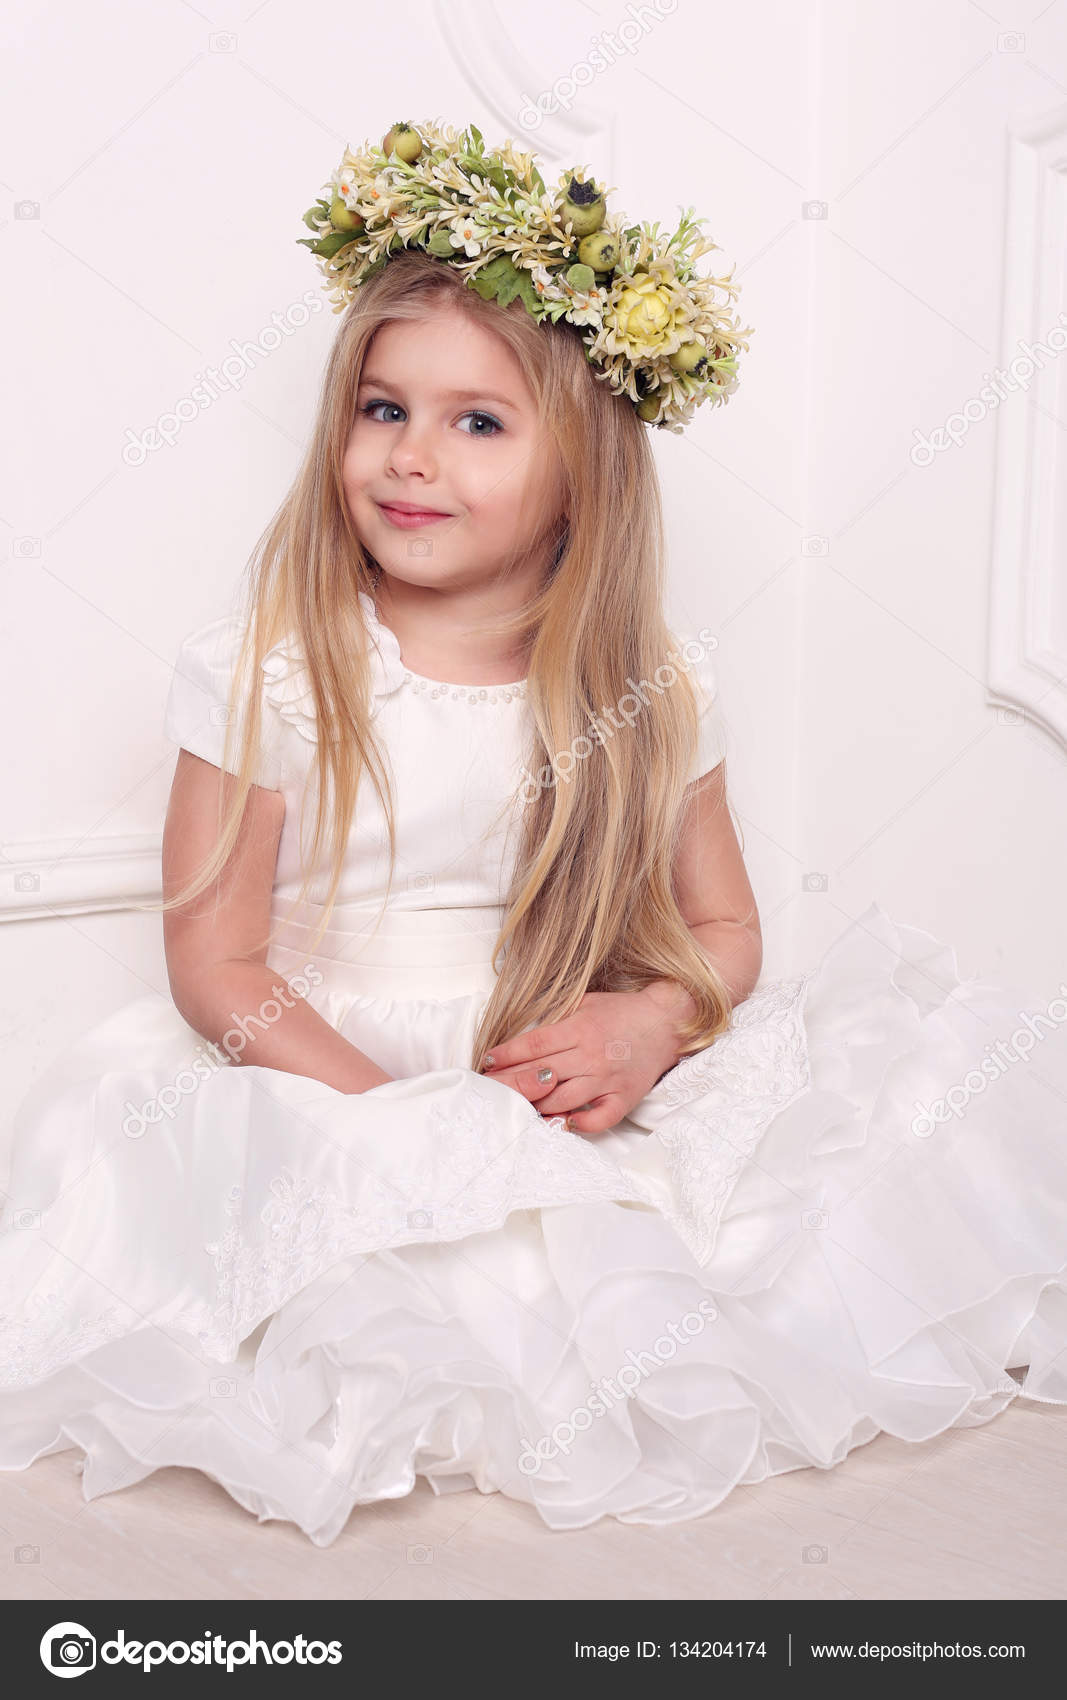 Little lady in dress with head wreath white background stock little lady in dress with head wreath girls dresses kids clothes wedding dress bridal head wreath baby wearing cute baby floral crowns izmirmasajfo Image collections